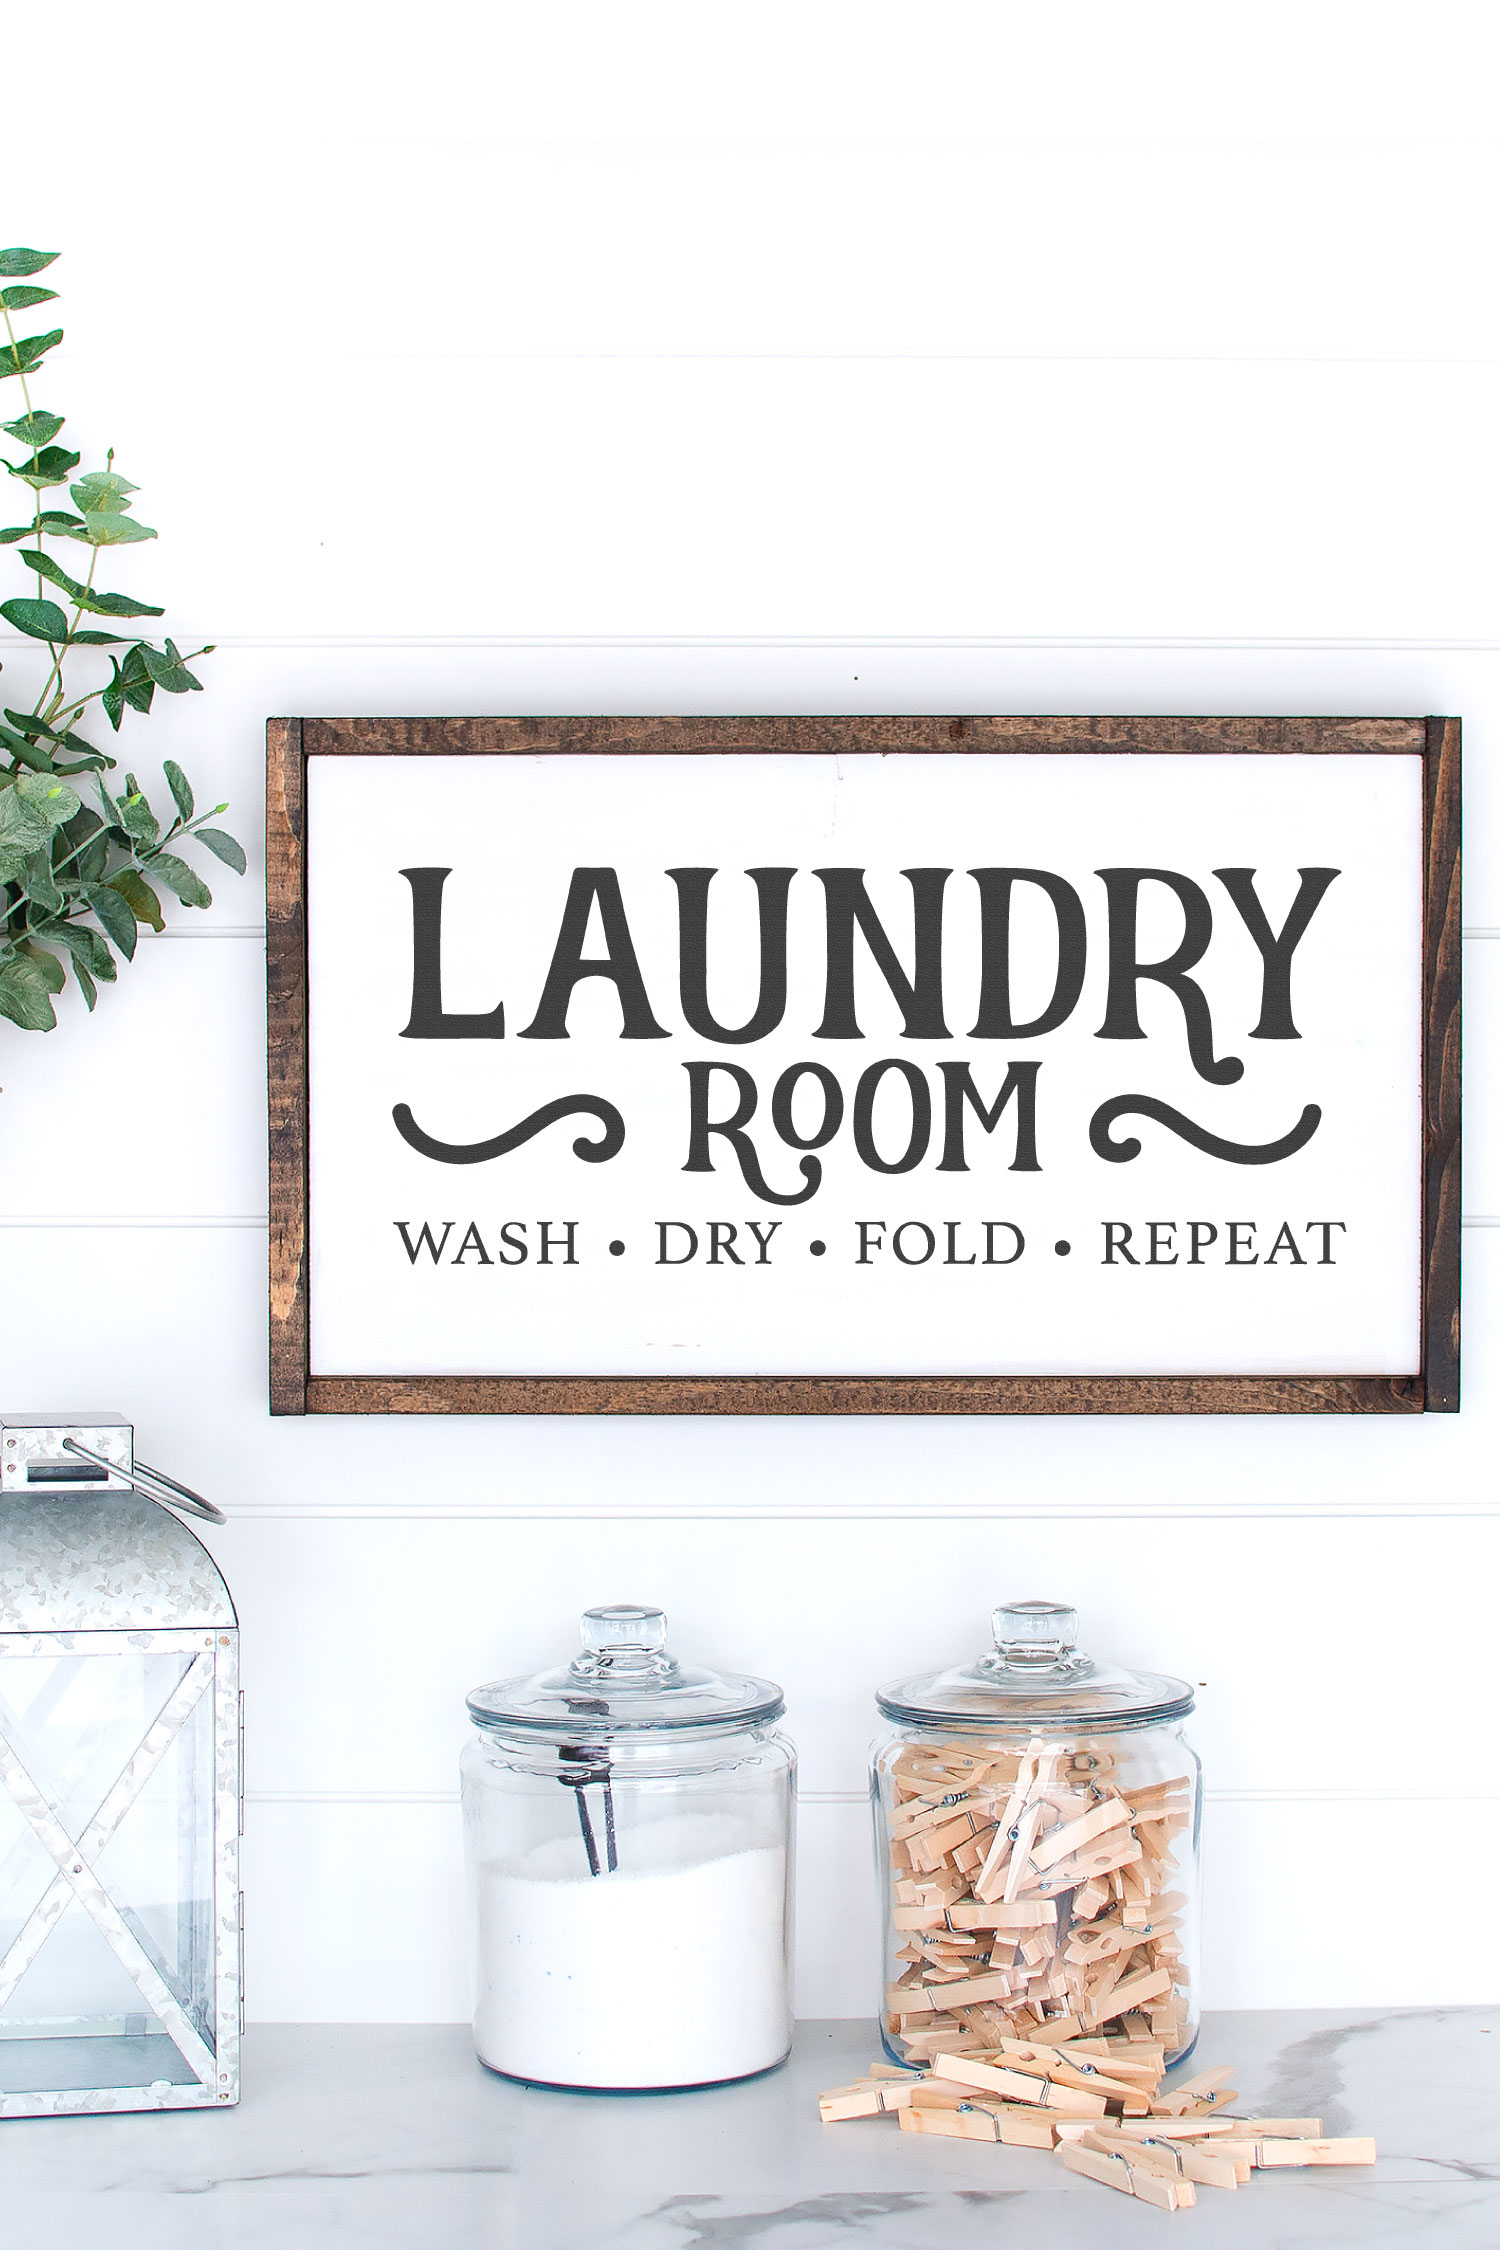 laundry room SVG files